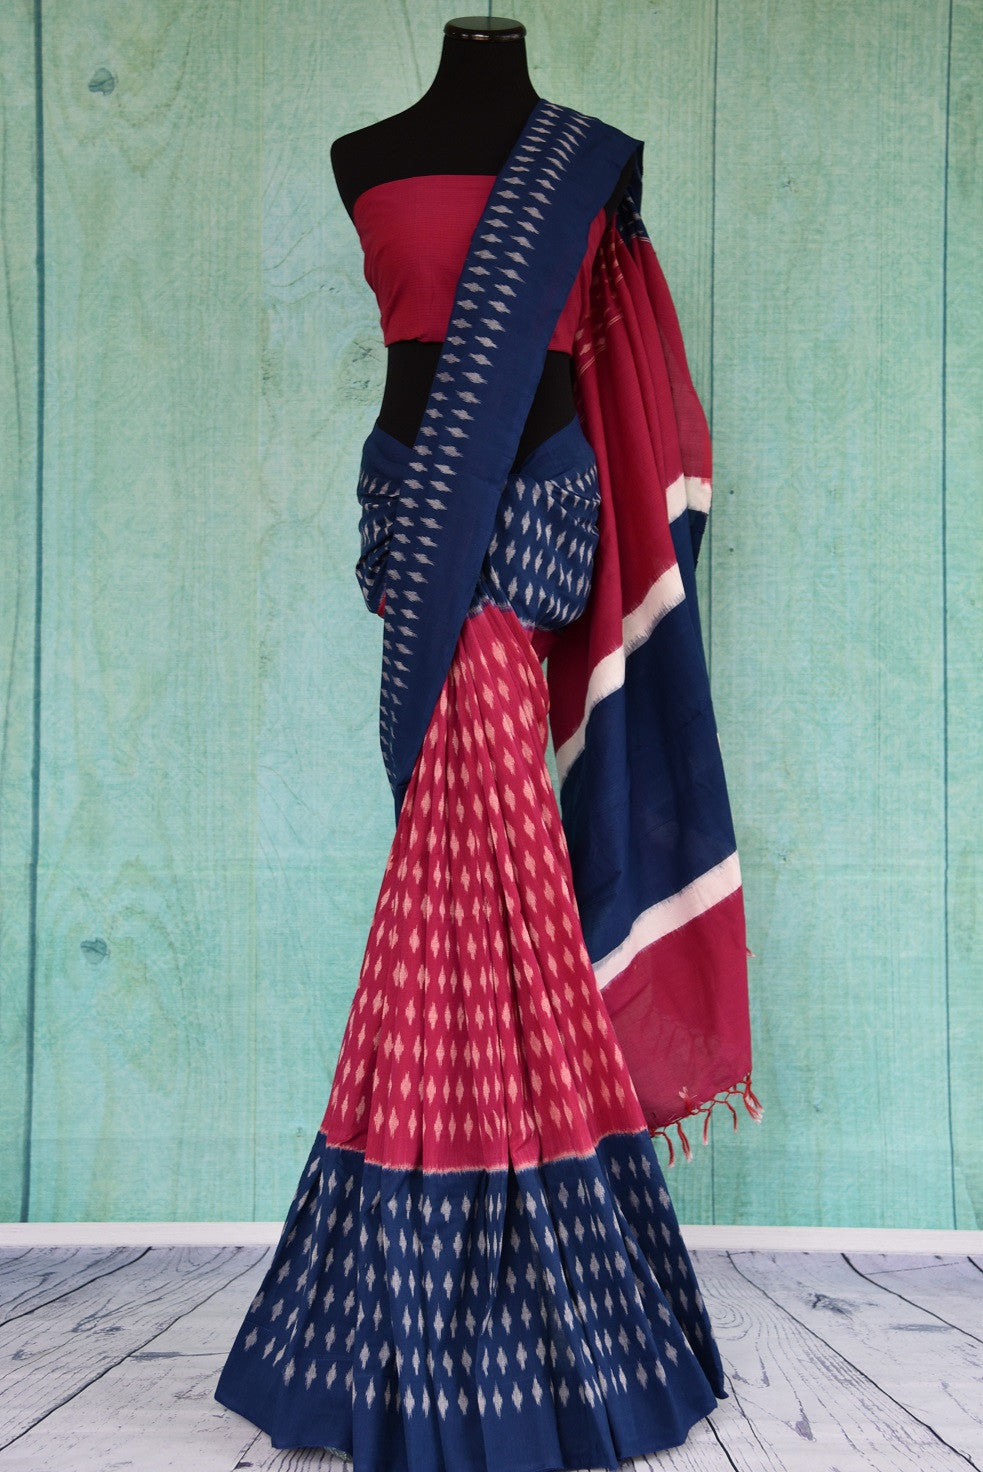 90D436 Cotton ikkat saree topped with traditional pattern & plain pallu. The evergreen red and blue sari will be a great addition to your ethnic clothing collection and is available at Pure Elegance.